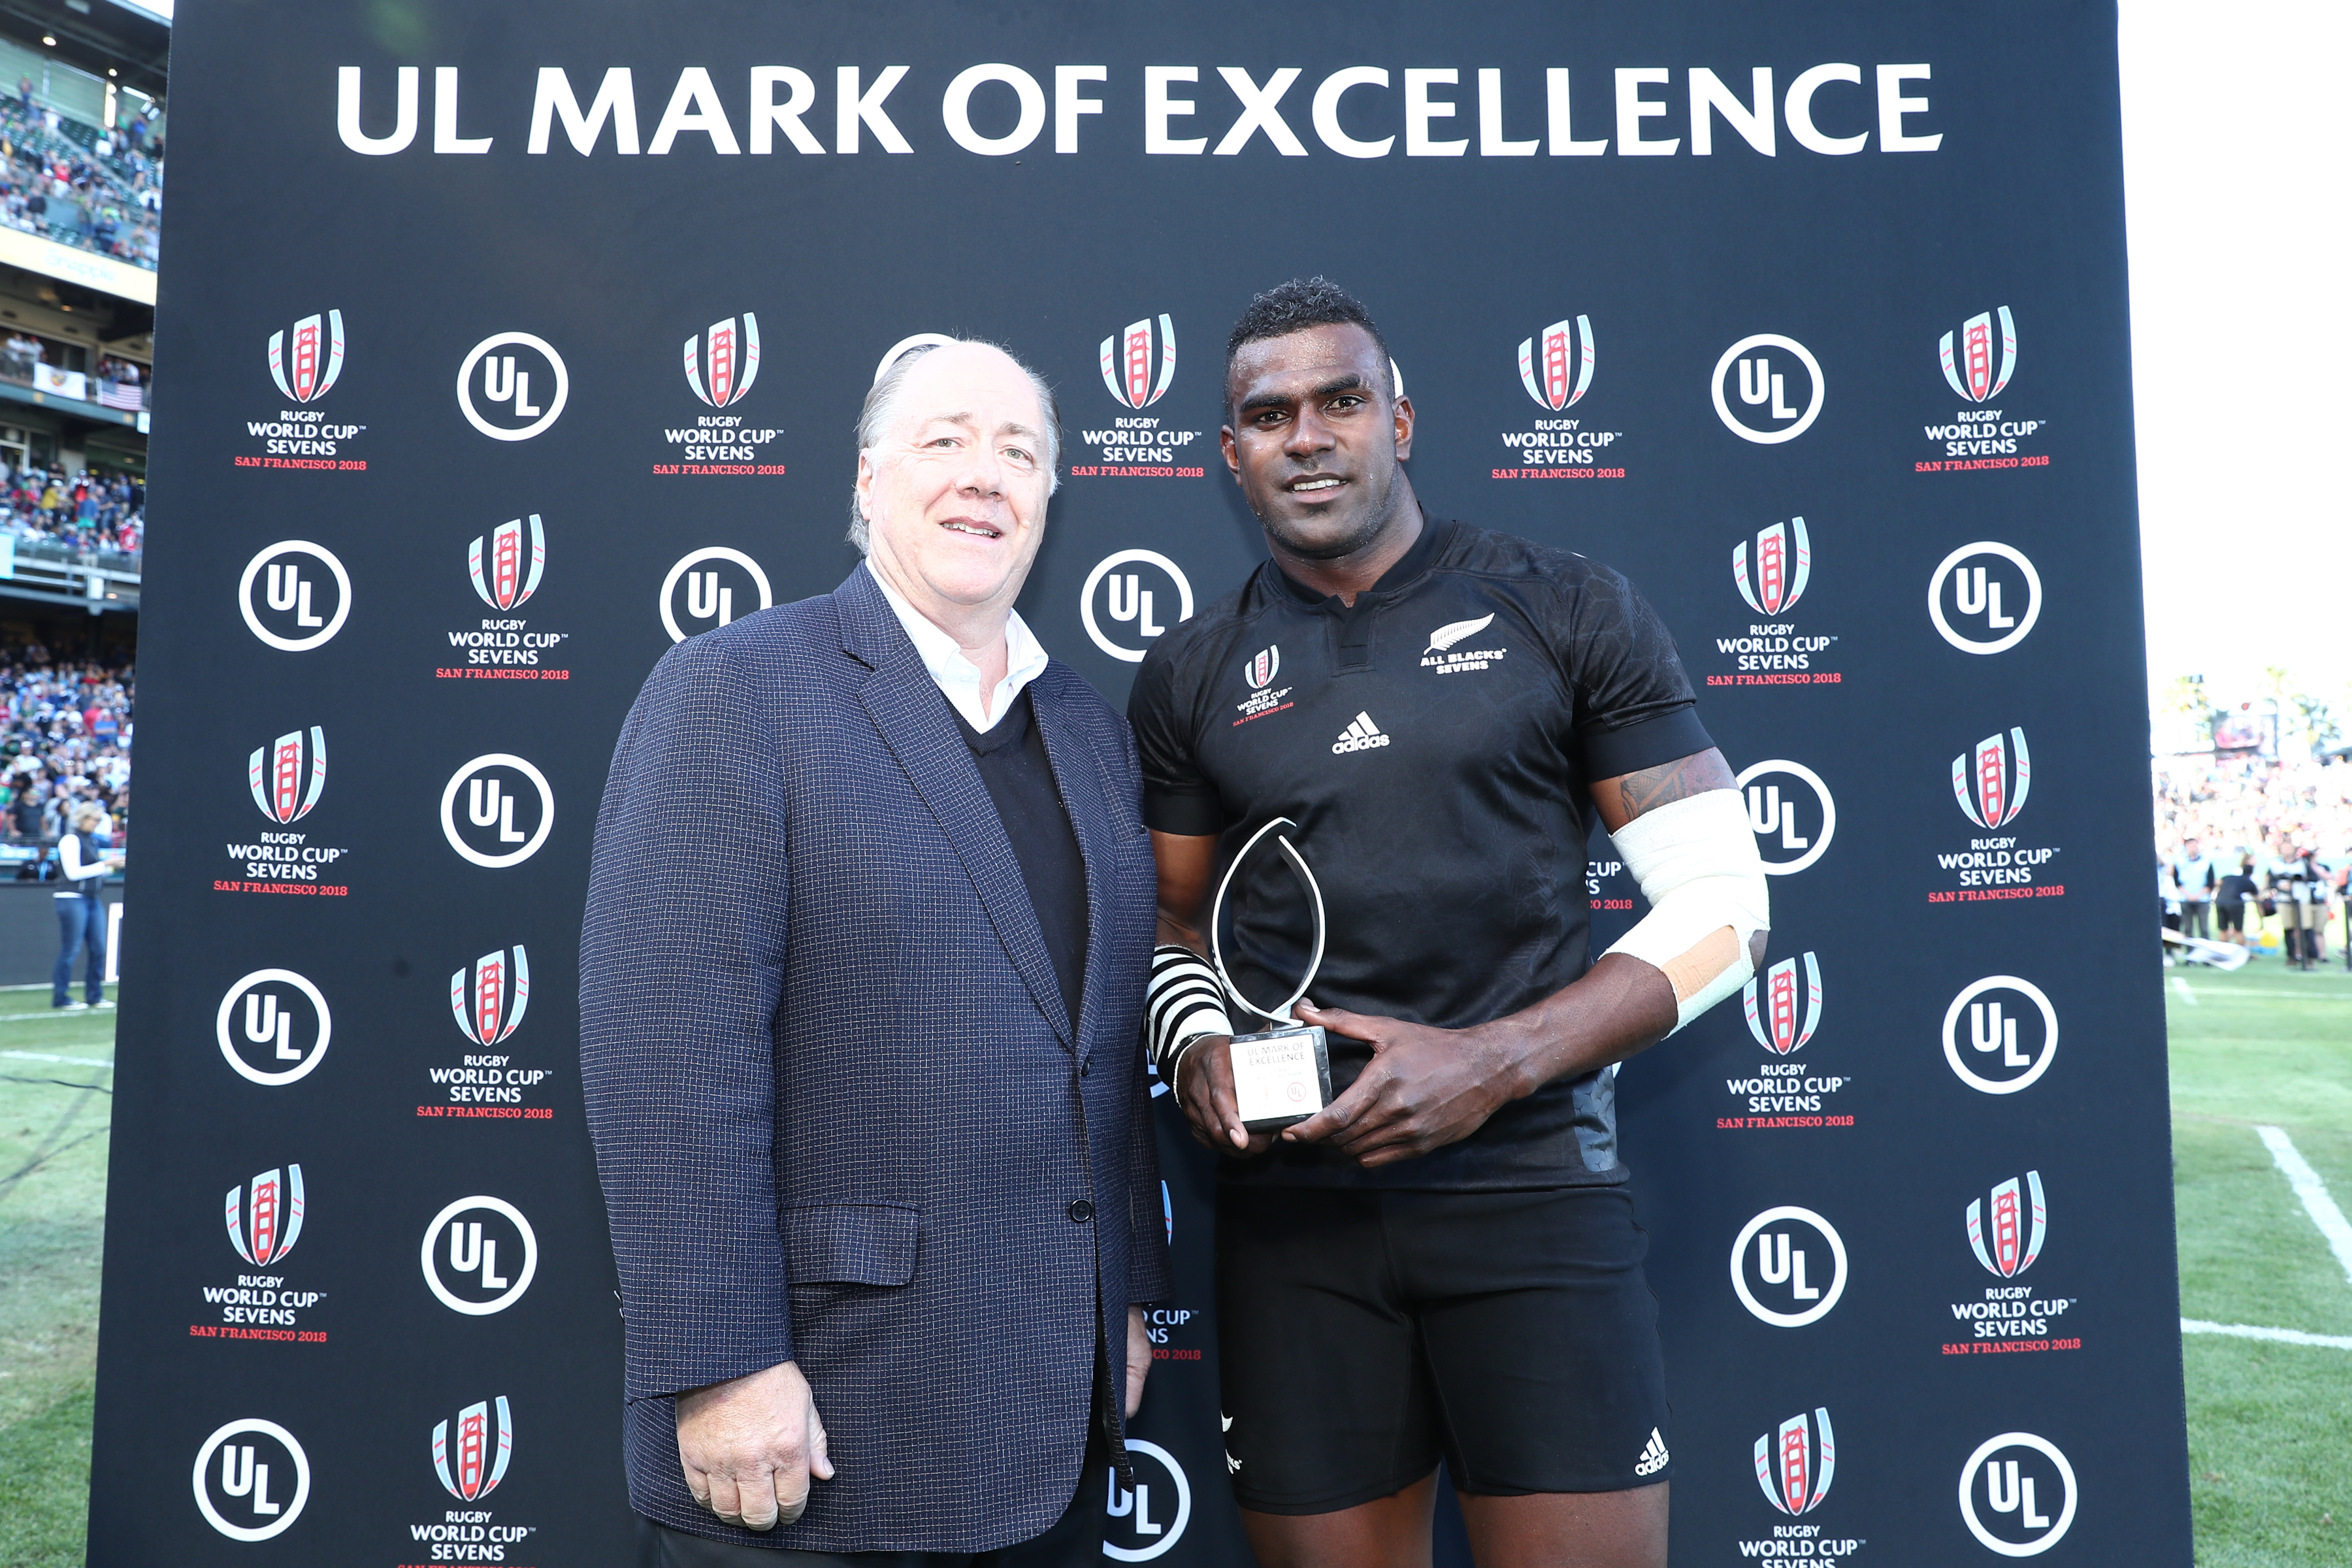 Rugby World Cup Sevens San Francisco 2018